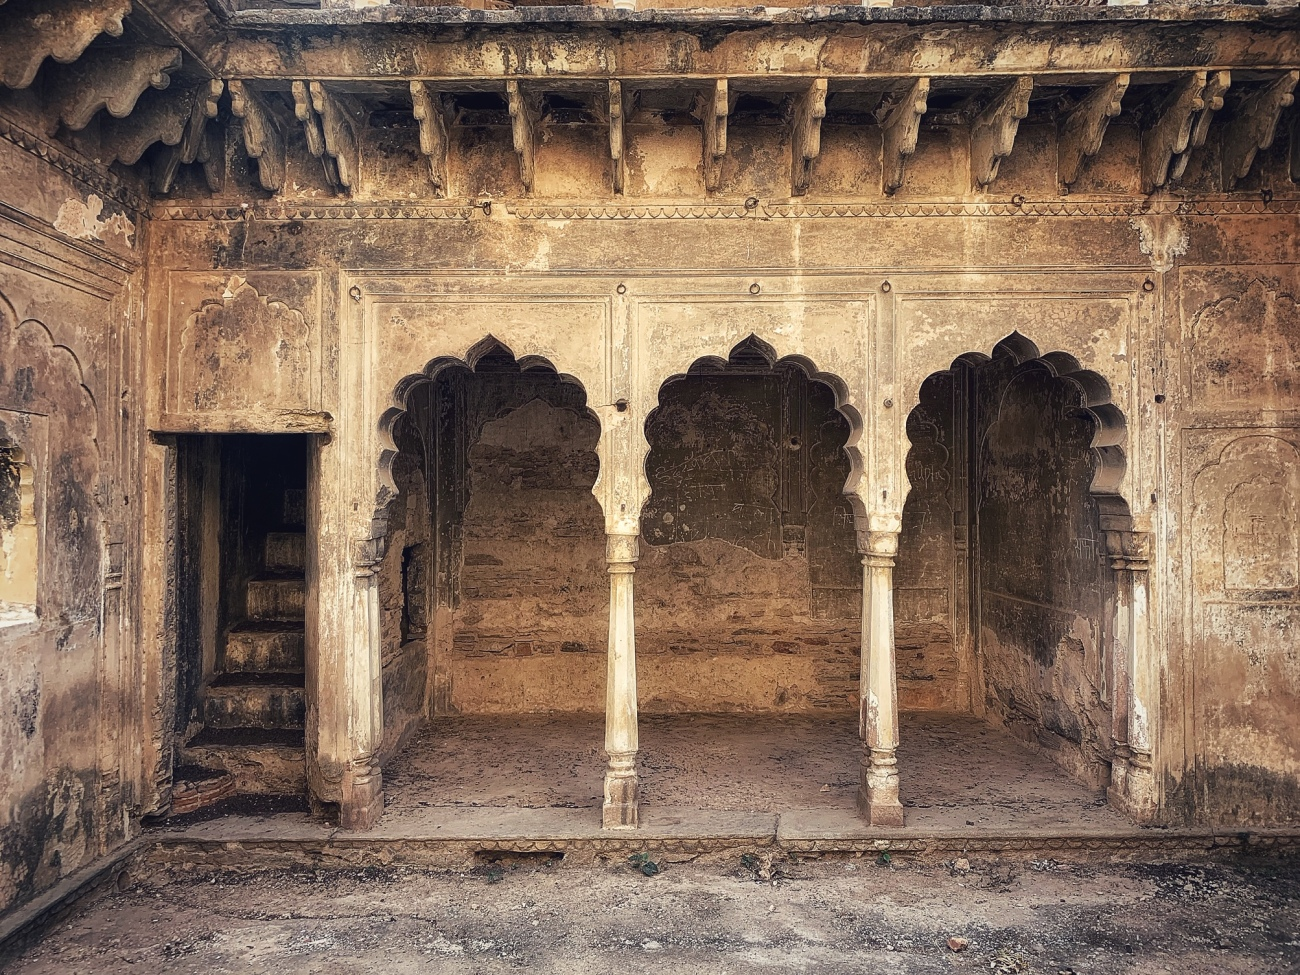 Arches and Stairways - Qila Tatarpur